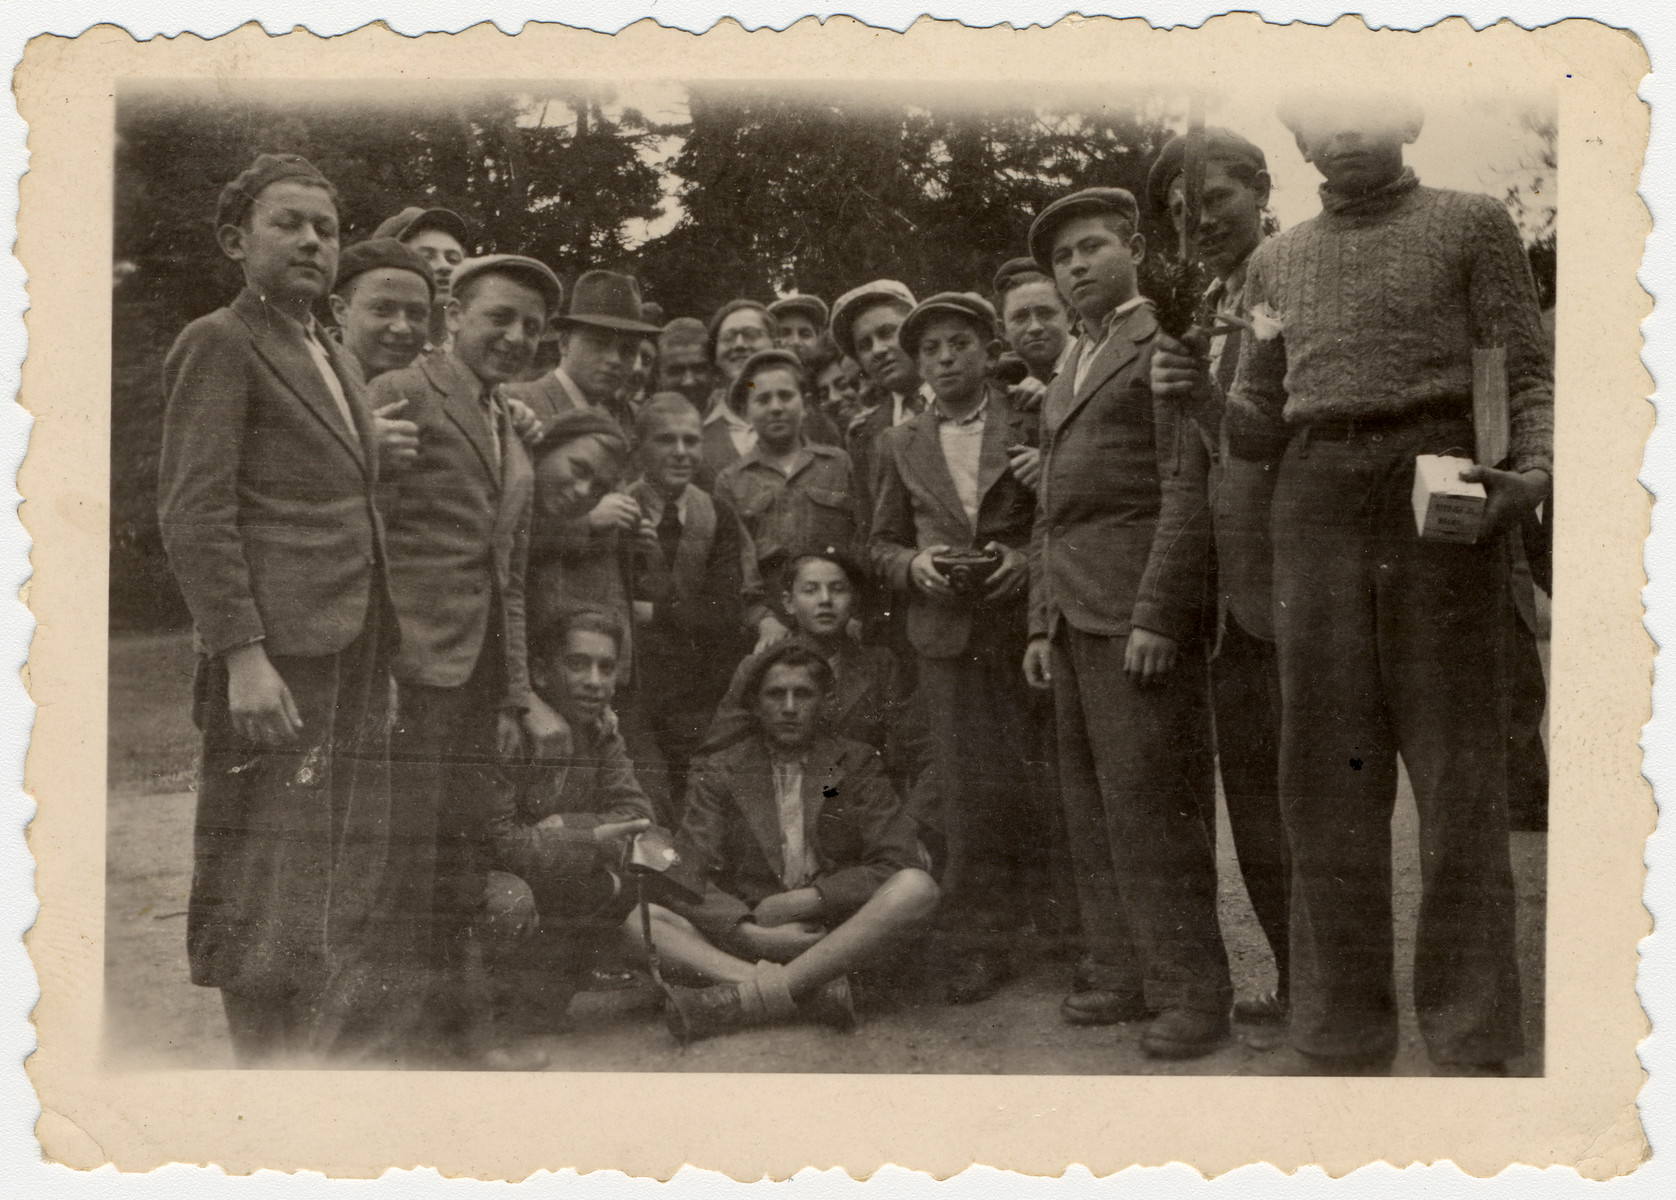 Group portrait of religious Jewish youth at either the Ambloy or the Taverny children's home.